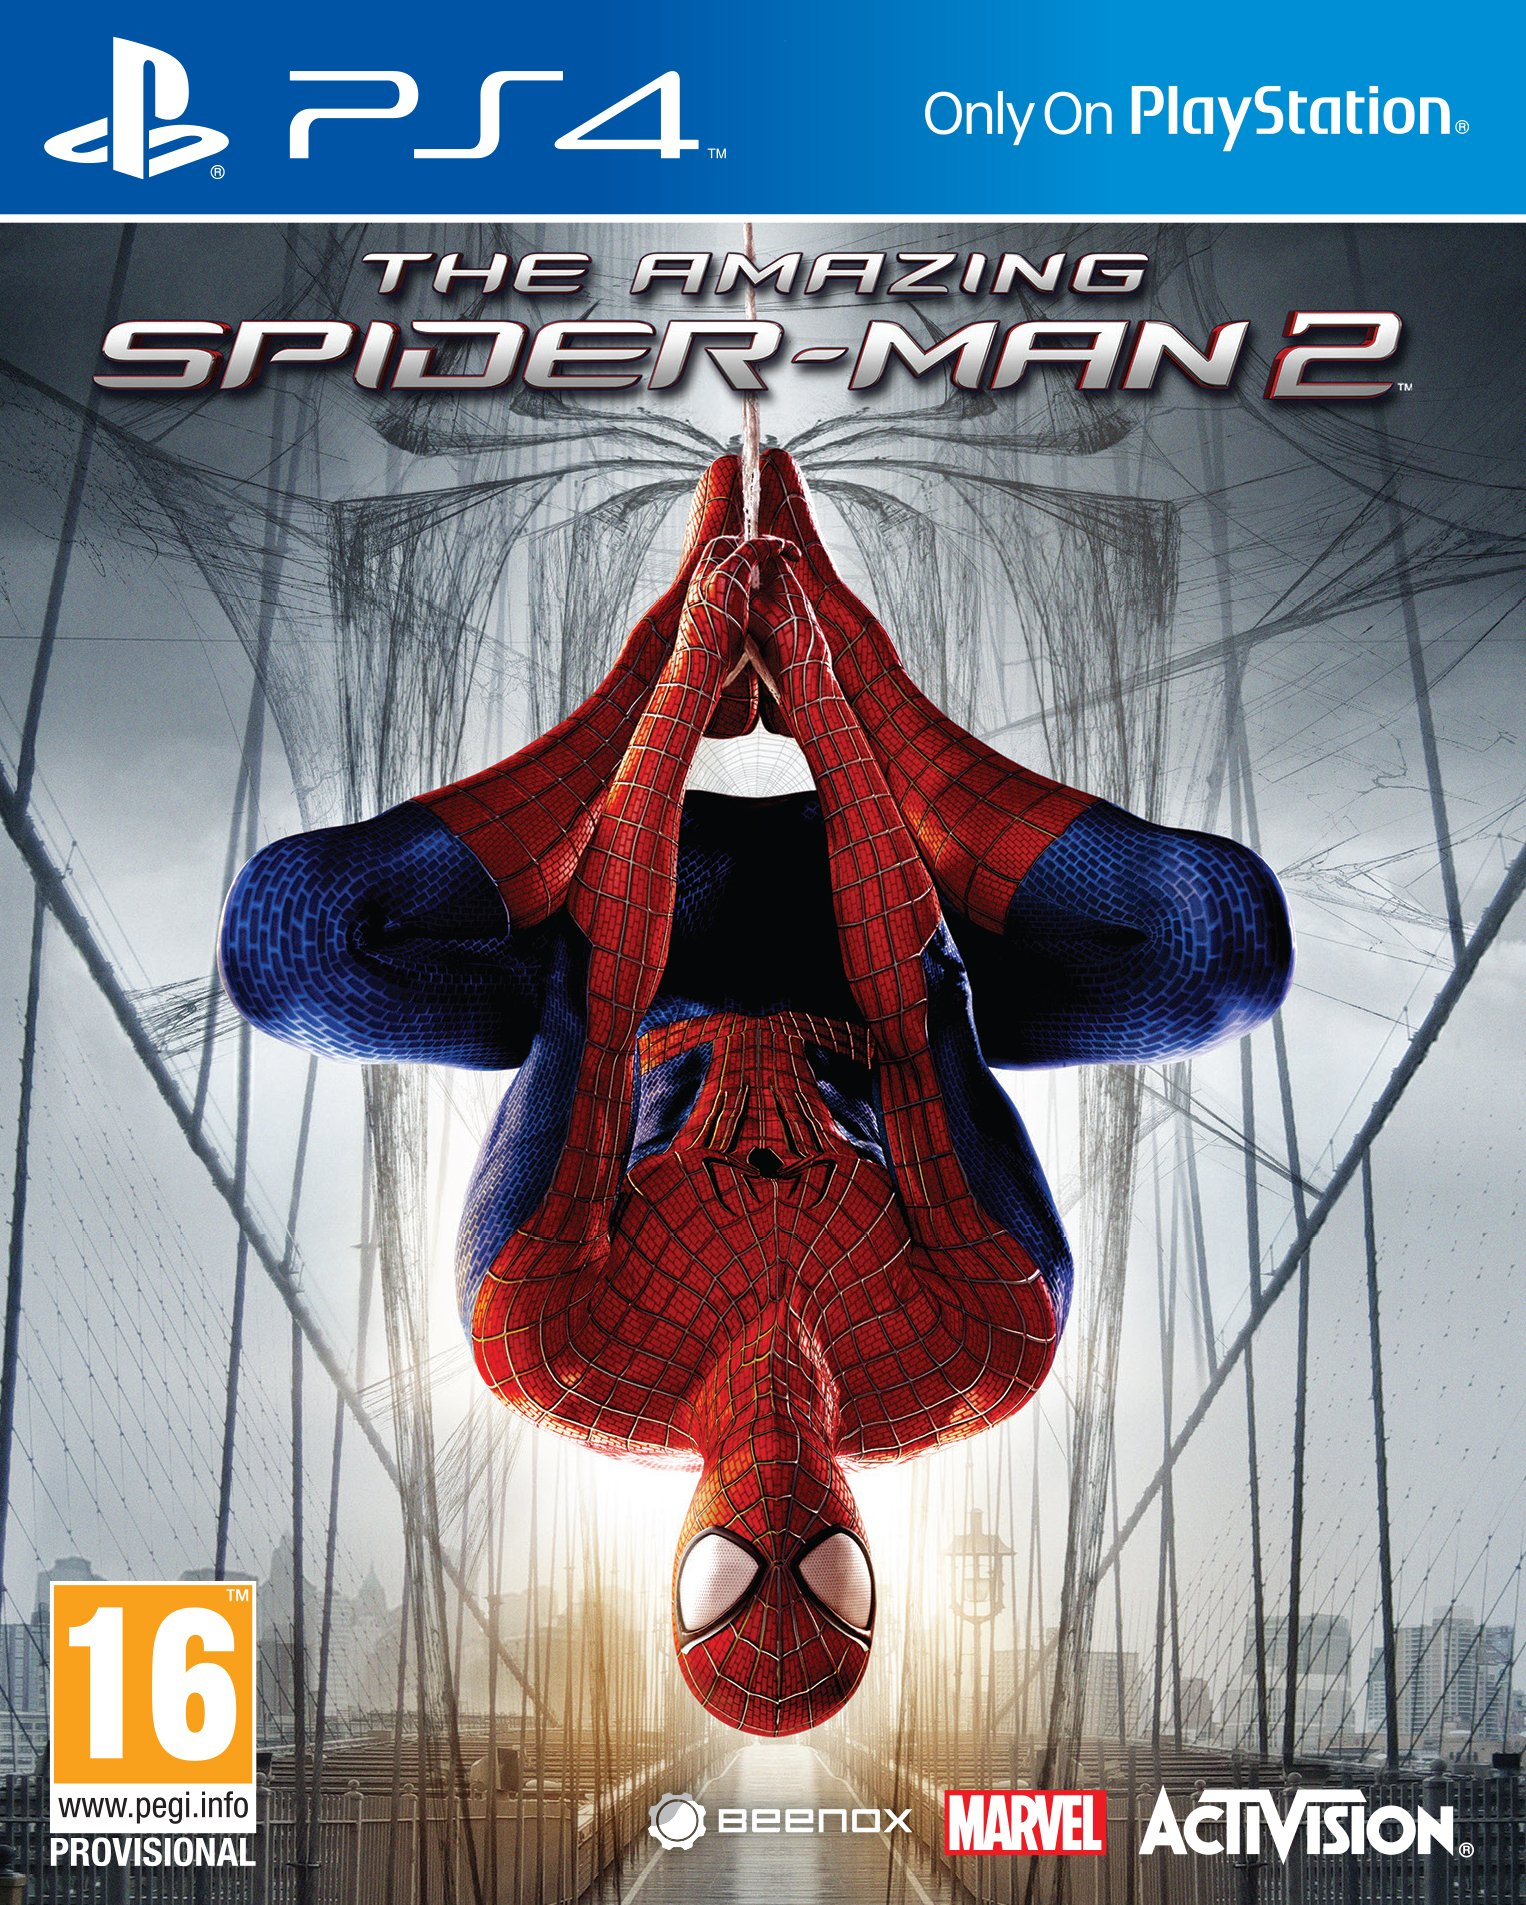 The Amazing Spider-Man 2 (Spiderman) Sony Playstation 4 PS4 Game by Activision (Image #1)